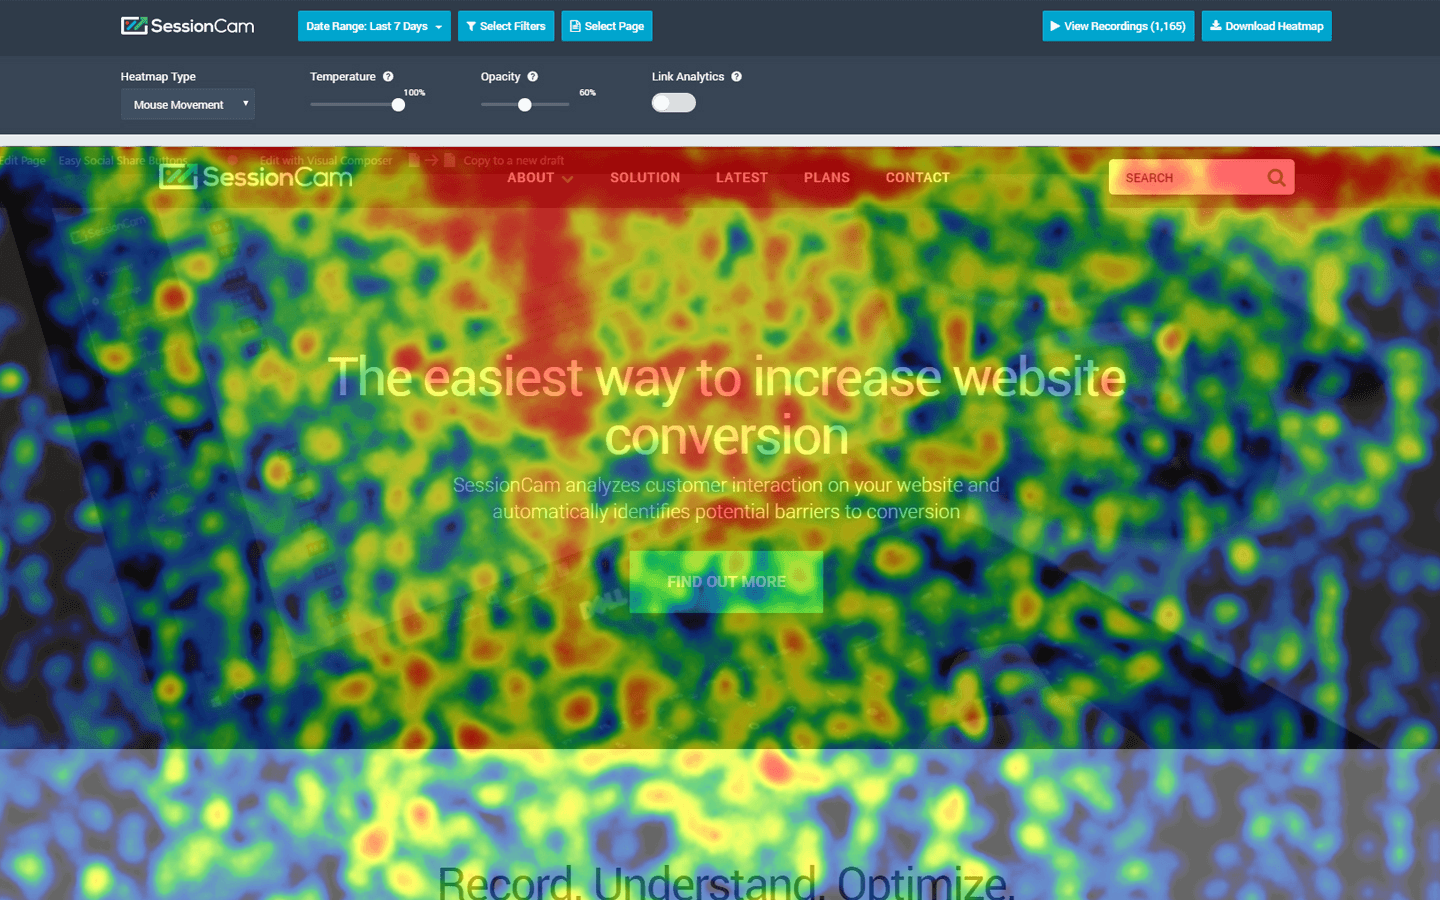 The Most Por Types of Website Heatmaps | SessionCam Heat Maps For Websites on